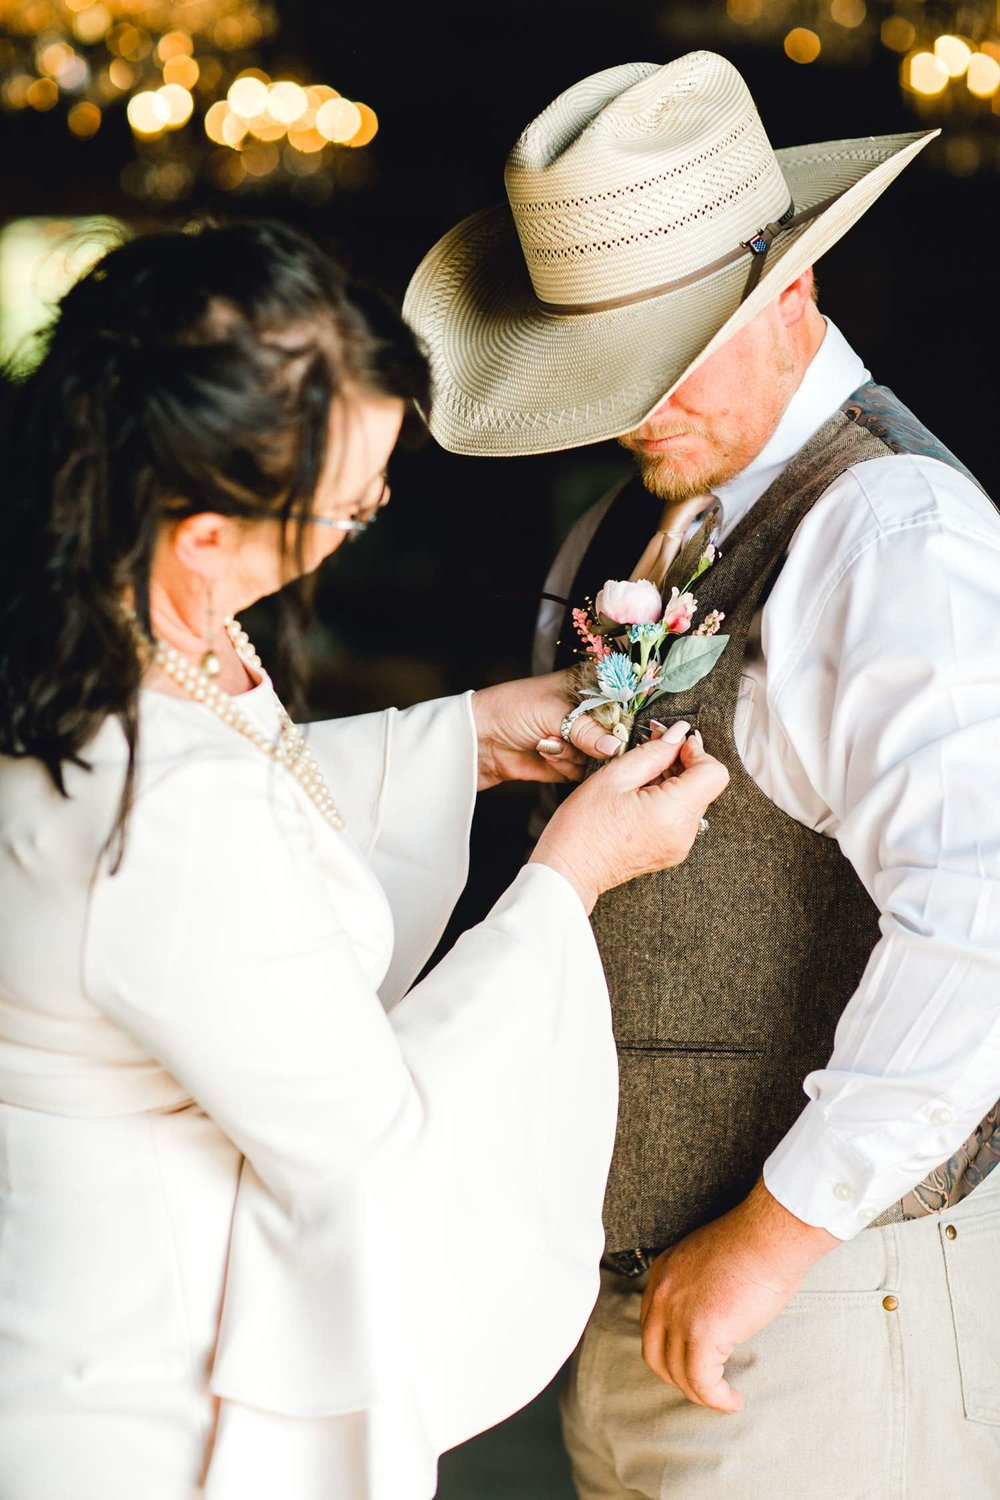 SARAH+TREVOR+BADGETT+SPARROW+CREEK+GRAHAM+TEXAS+ALLEEJ+WEDDINGS_0026.jpg